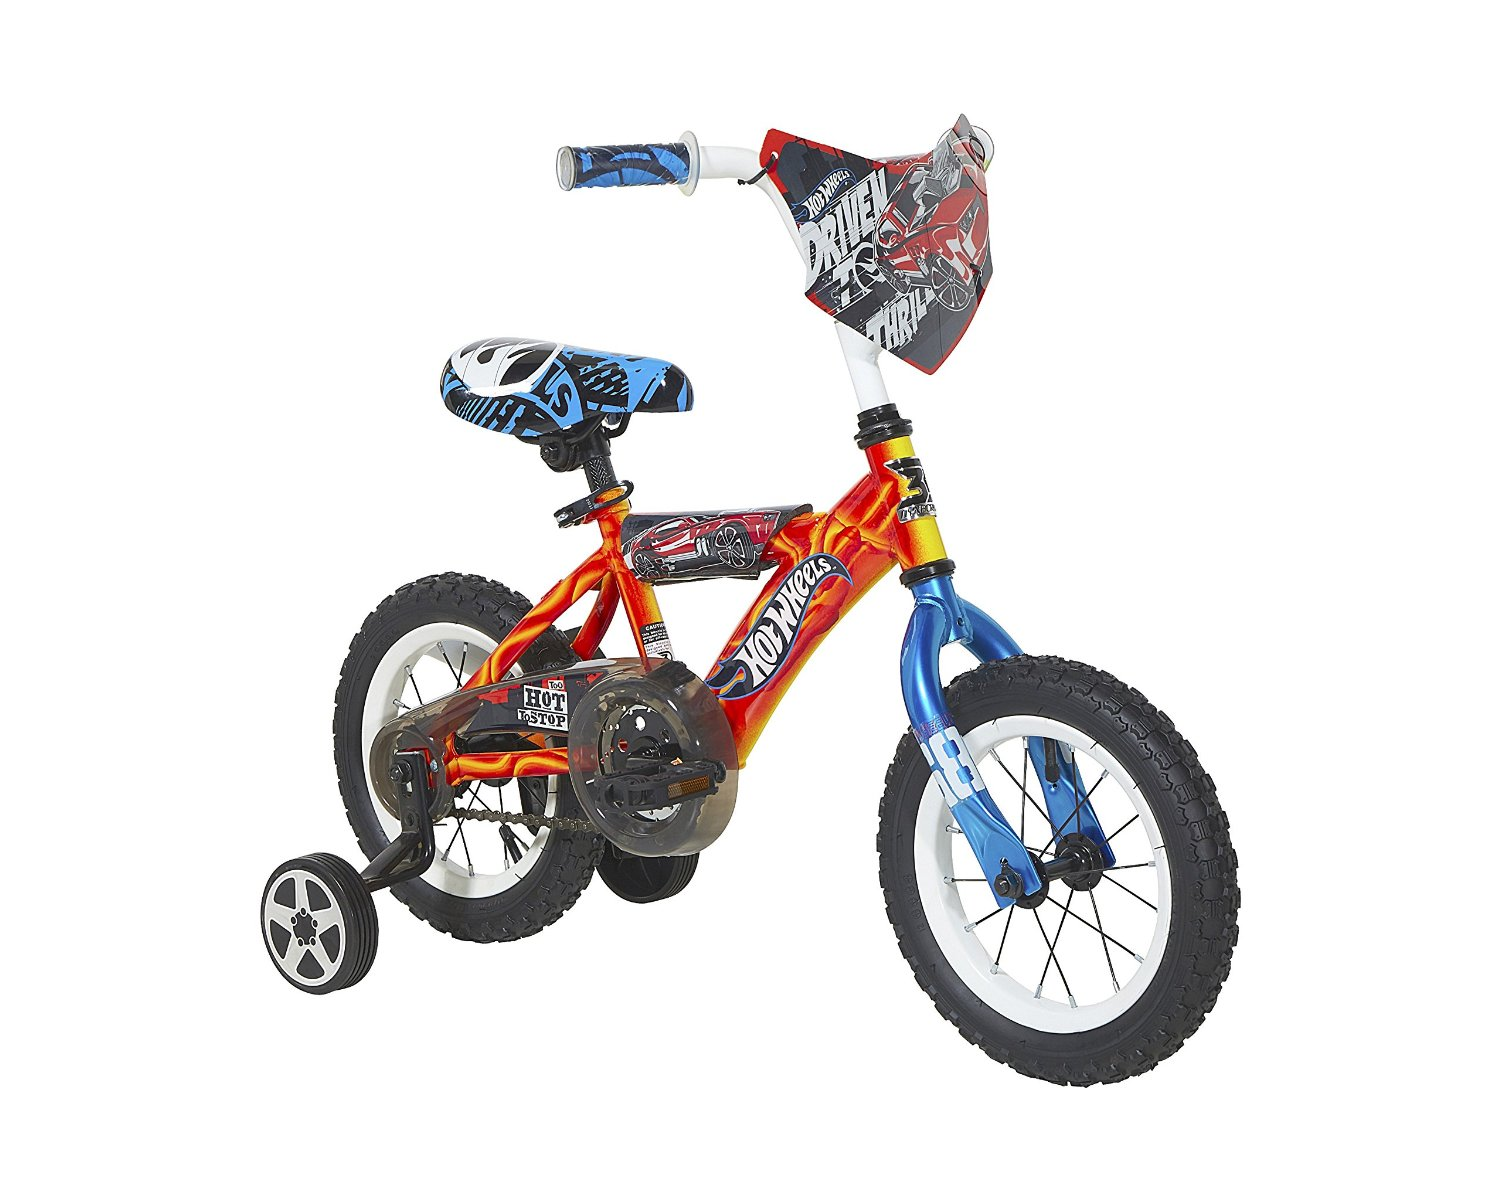 Cheap Dynacraft Bike Parts Find Deals On Line Get Quotations Hot Wheels Boys With Turbospoke 12 Red Blue